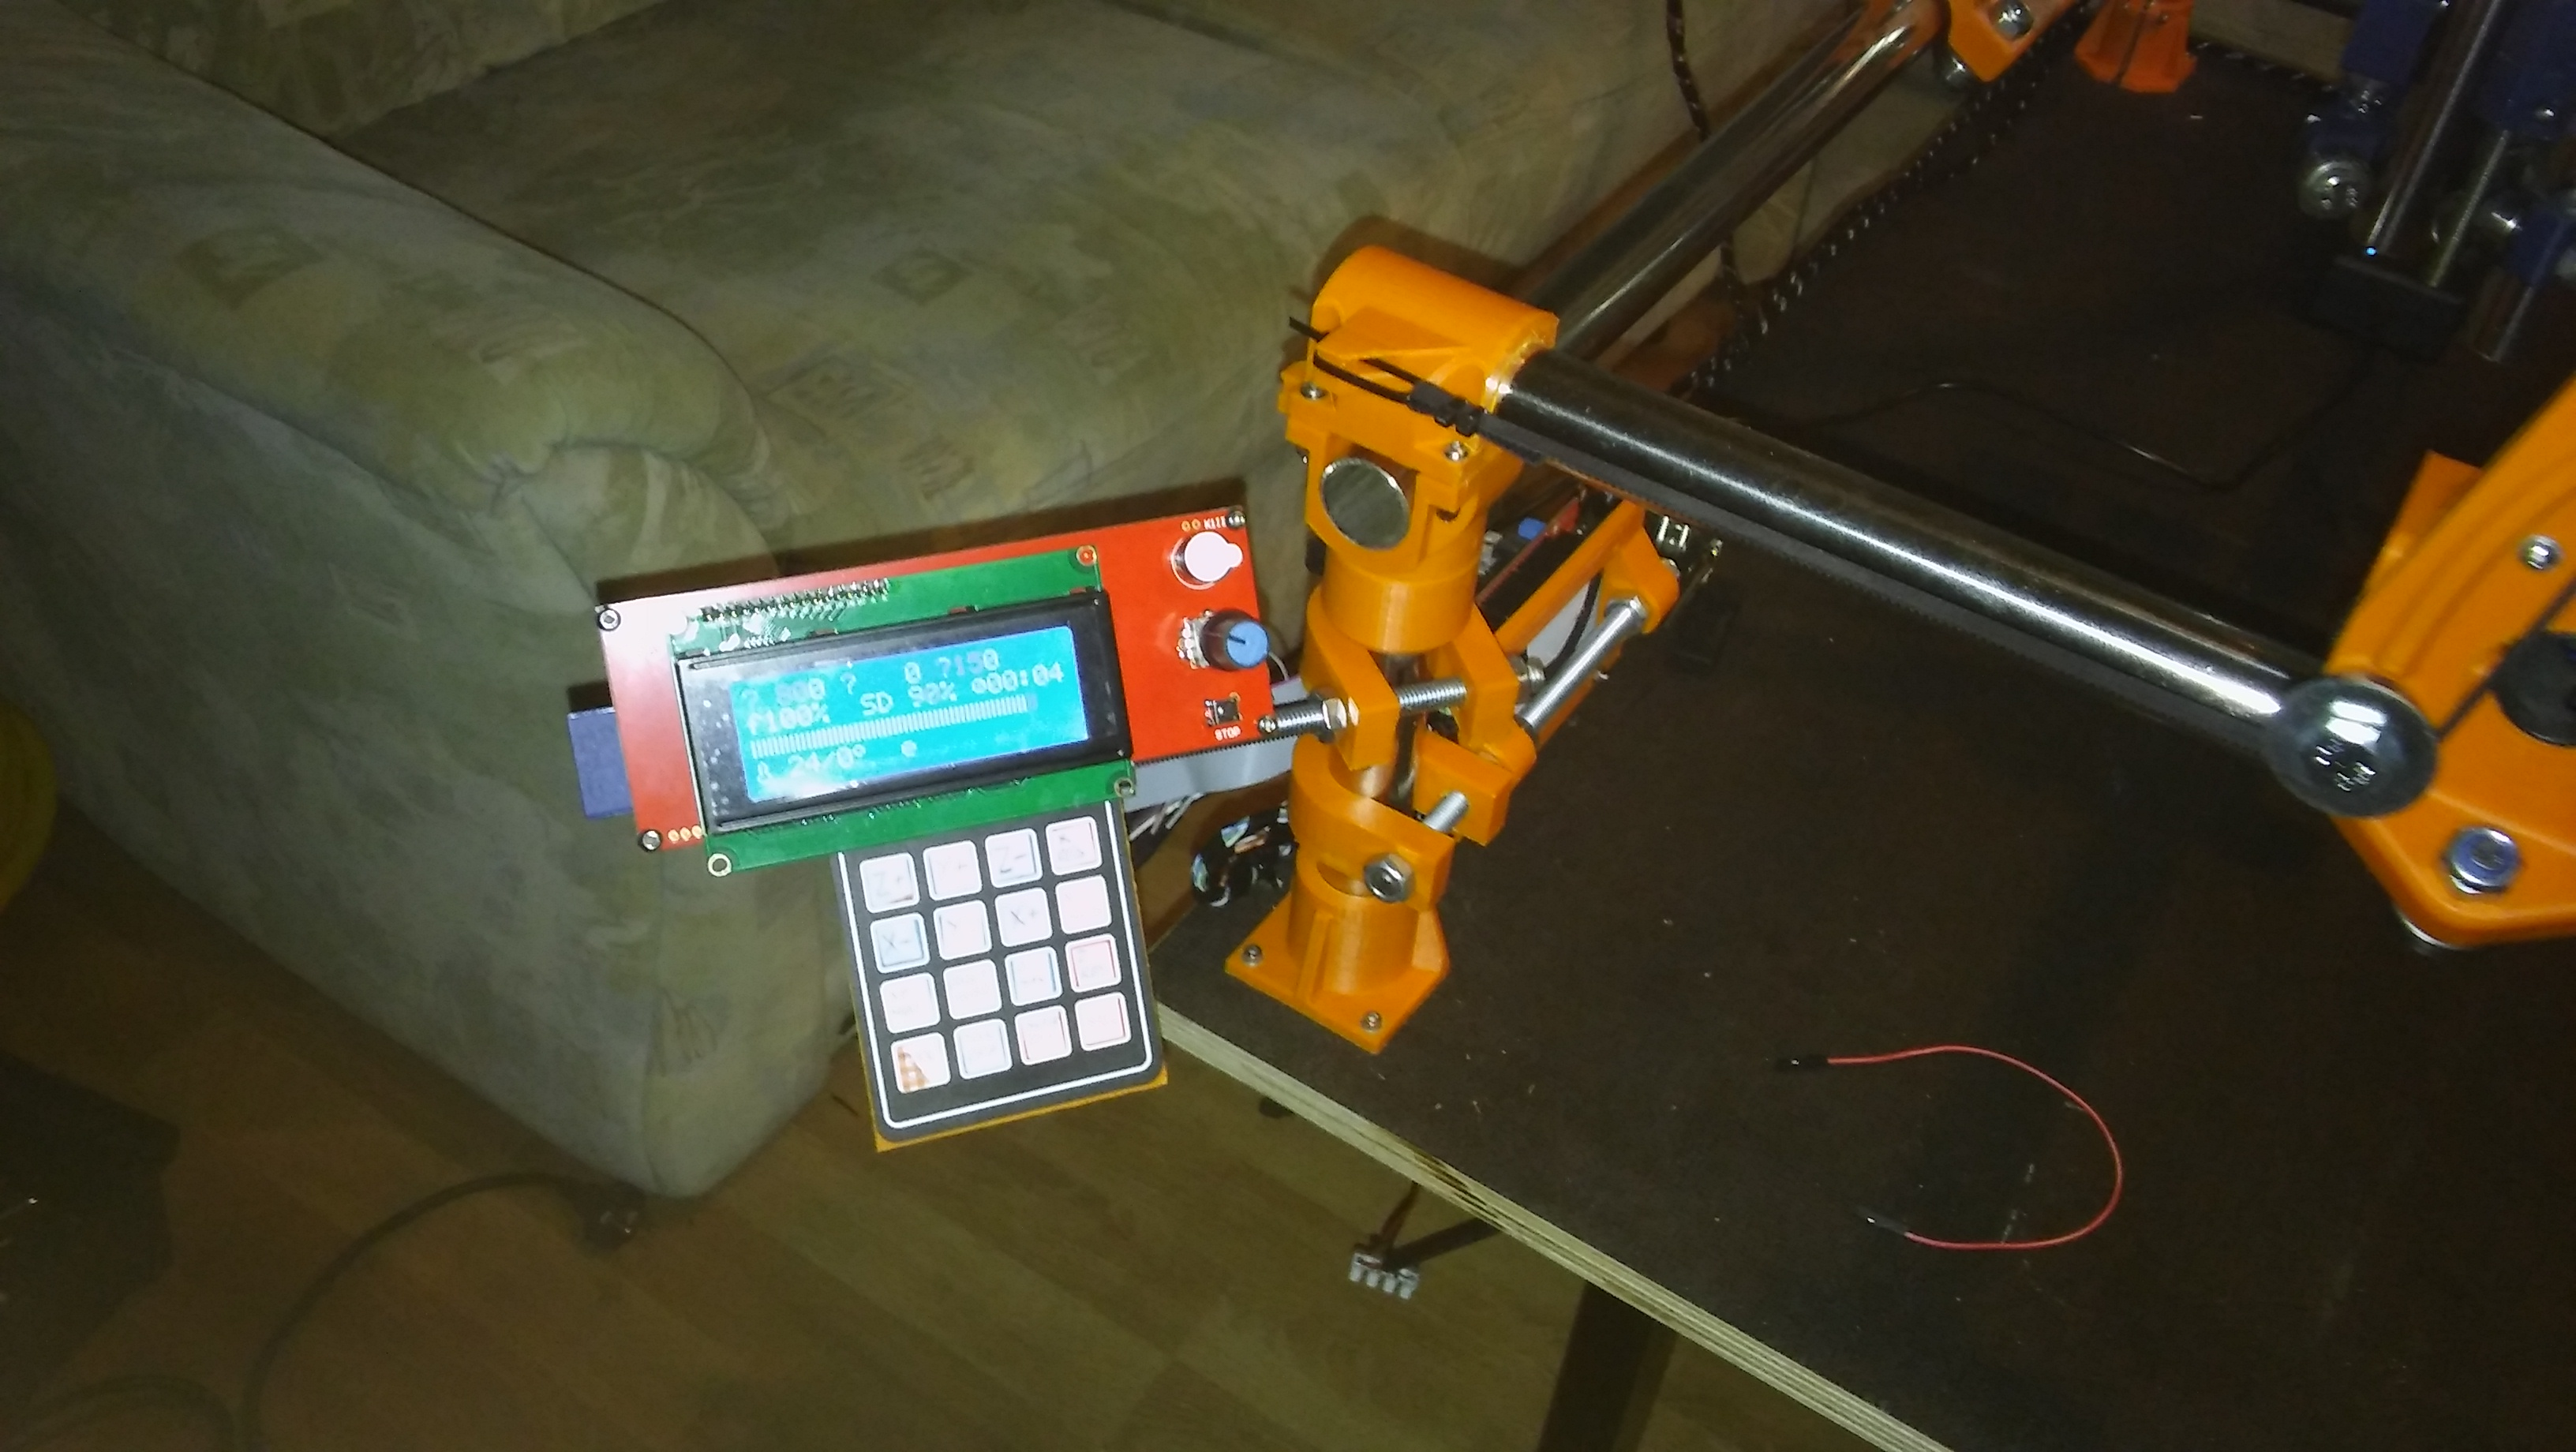 MPCNC - Keypad + IE holder for lcd and ramps by Slavulj - Thingiverse